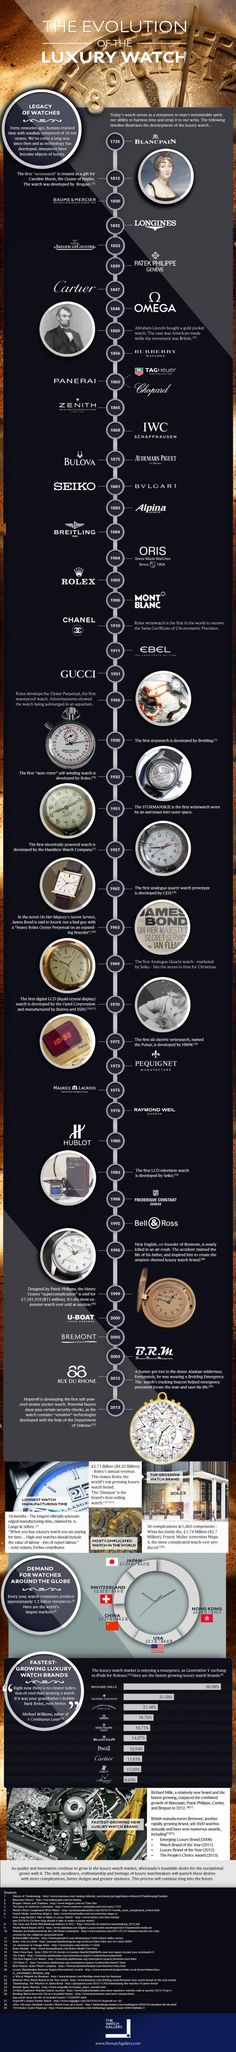 The Evolution of the Luxury Watch infographic